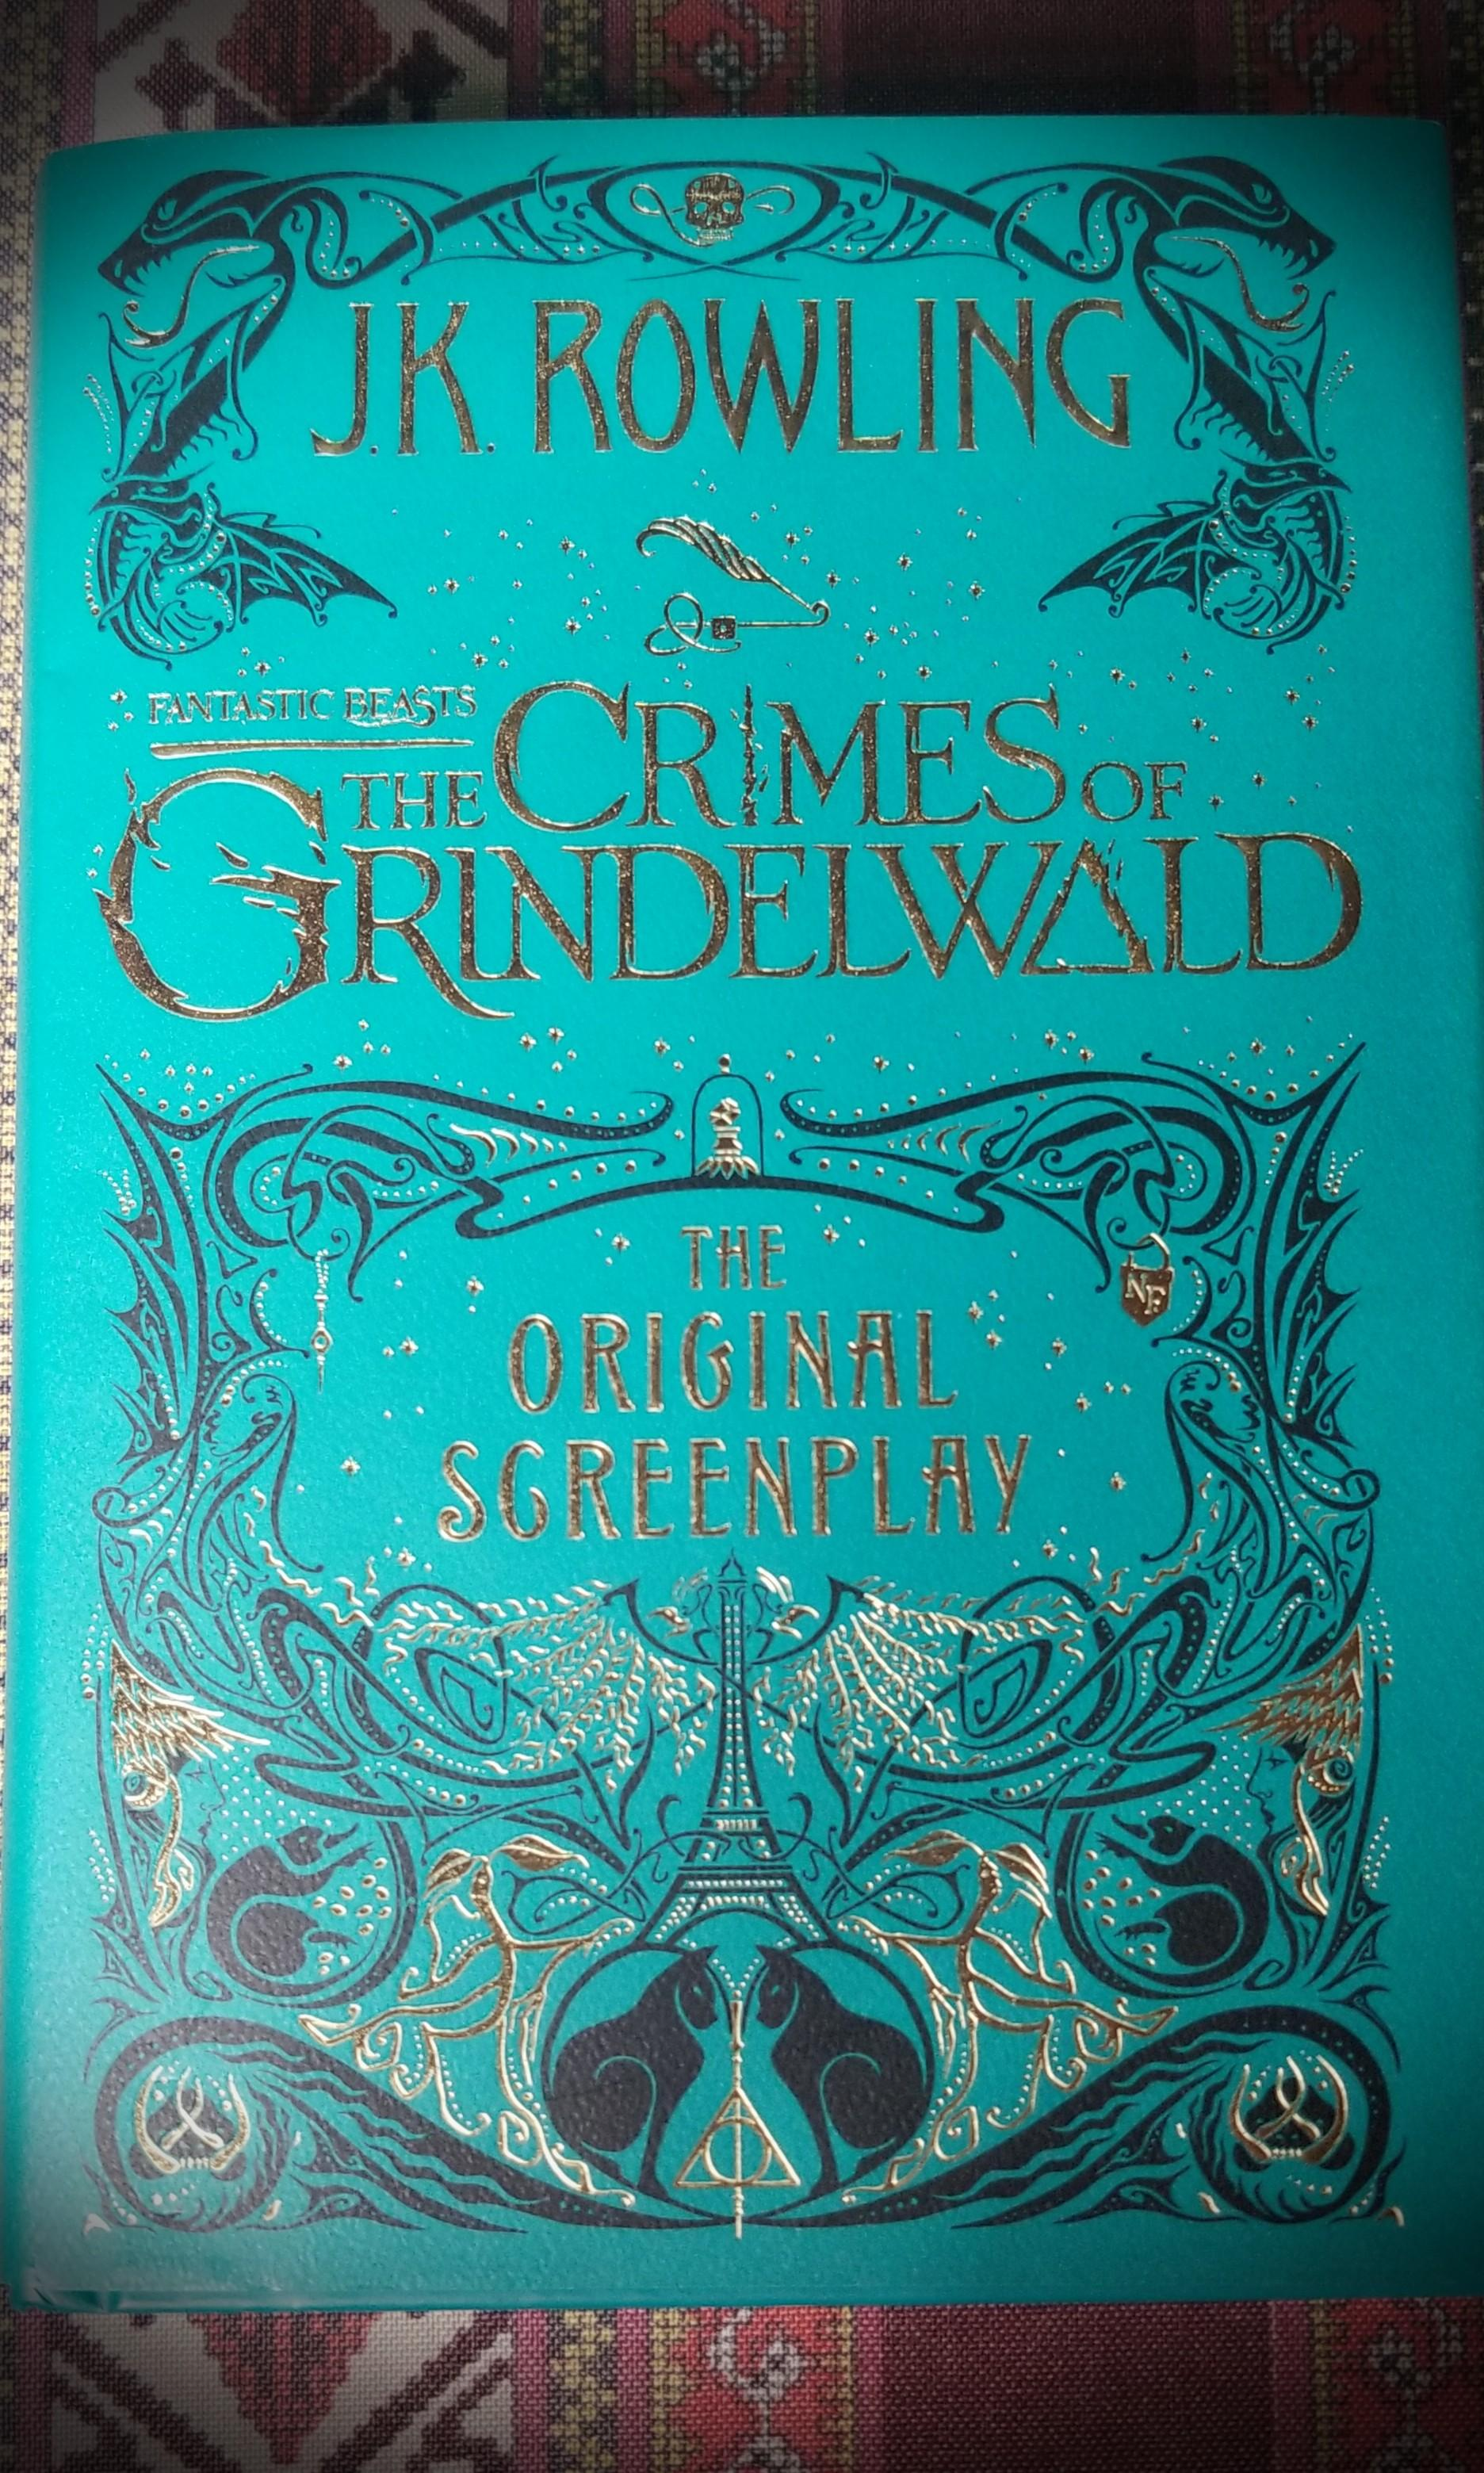 JK Rowling's Fantastic Beasts The Crimes of Grindelwald (The Original Screenplay)